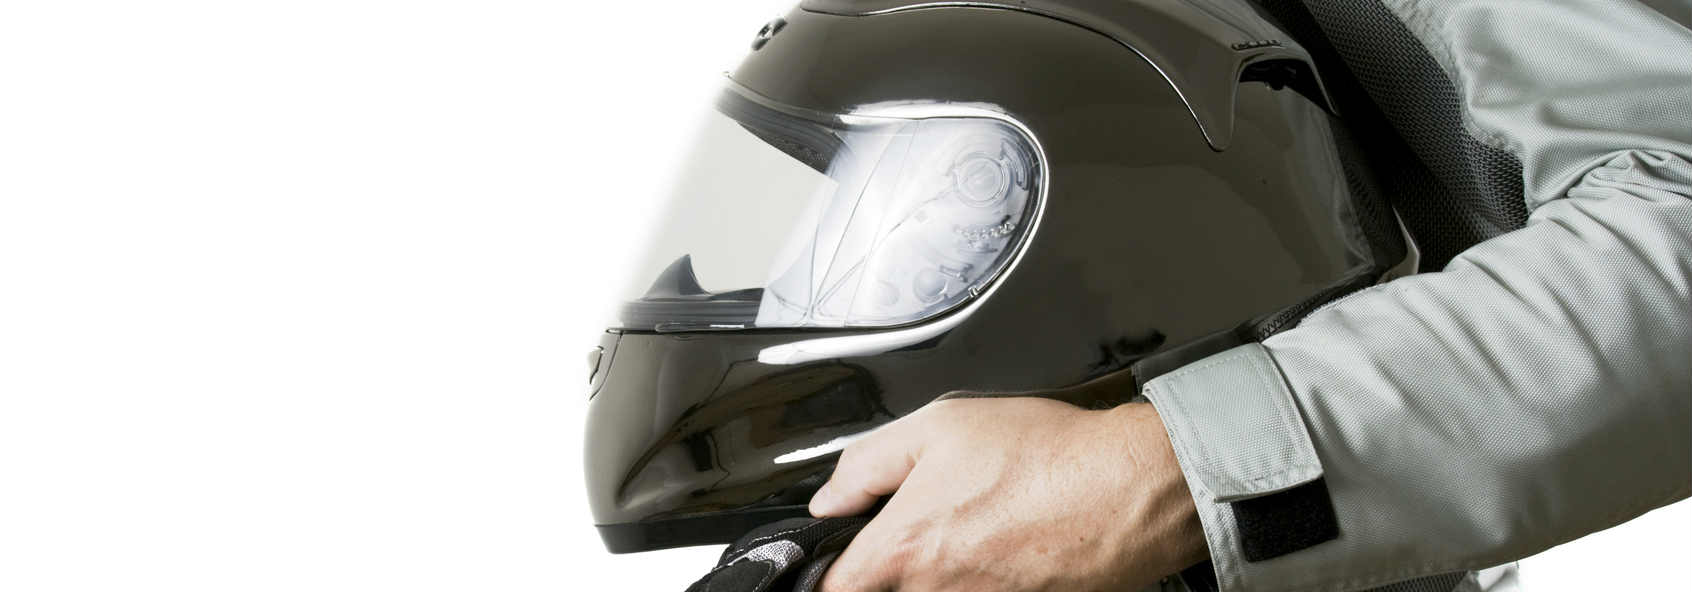 the motorcycle helmet law 3 the states responded immediately by enacting these laws14 from the outset the helmet laws were controversial,15 and motorcycle groups became politically active and fought the helmet laws in.